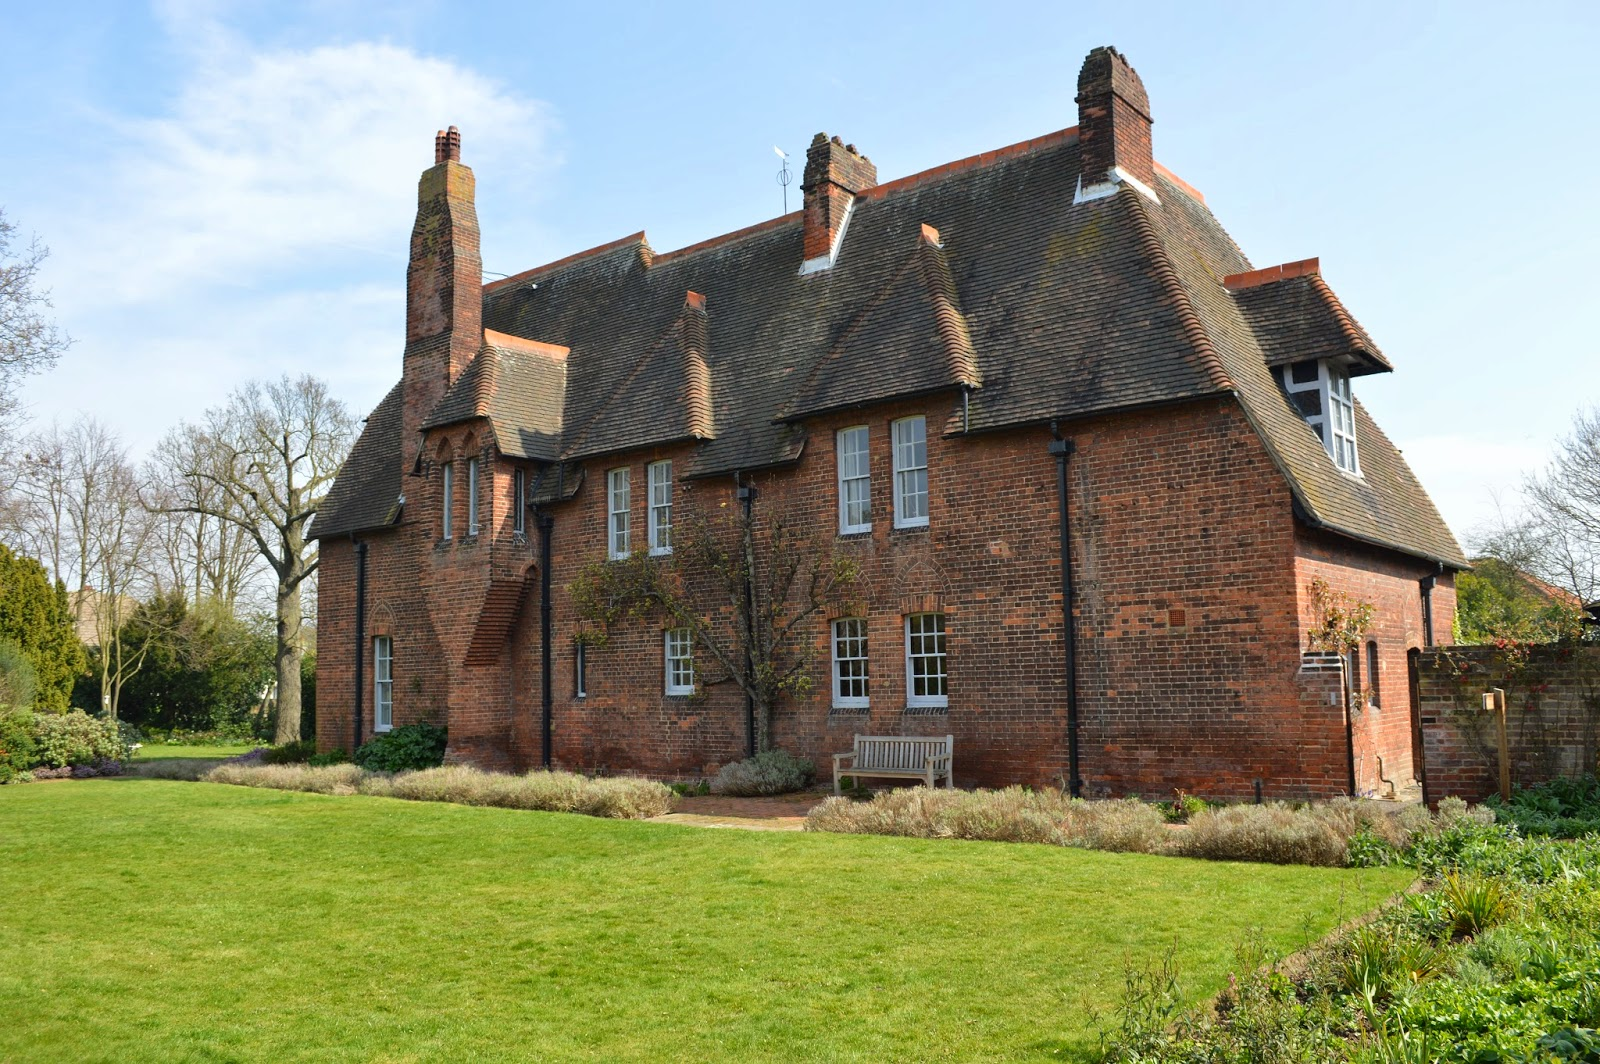 Red House, William Morris, property, Art and Crafts Movement, Philip Webb, architecture, building, National Trust, property, brick, PRB, pre-Raphaelite brothers, sunshine, gardens, flowers, daffodils, Spring, visit, Bexleyheath, London,